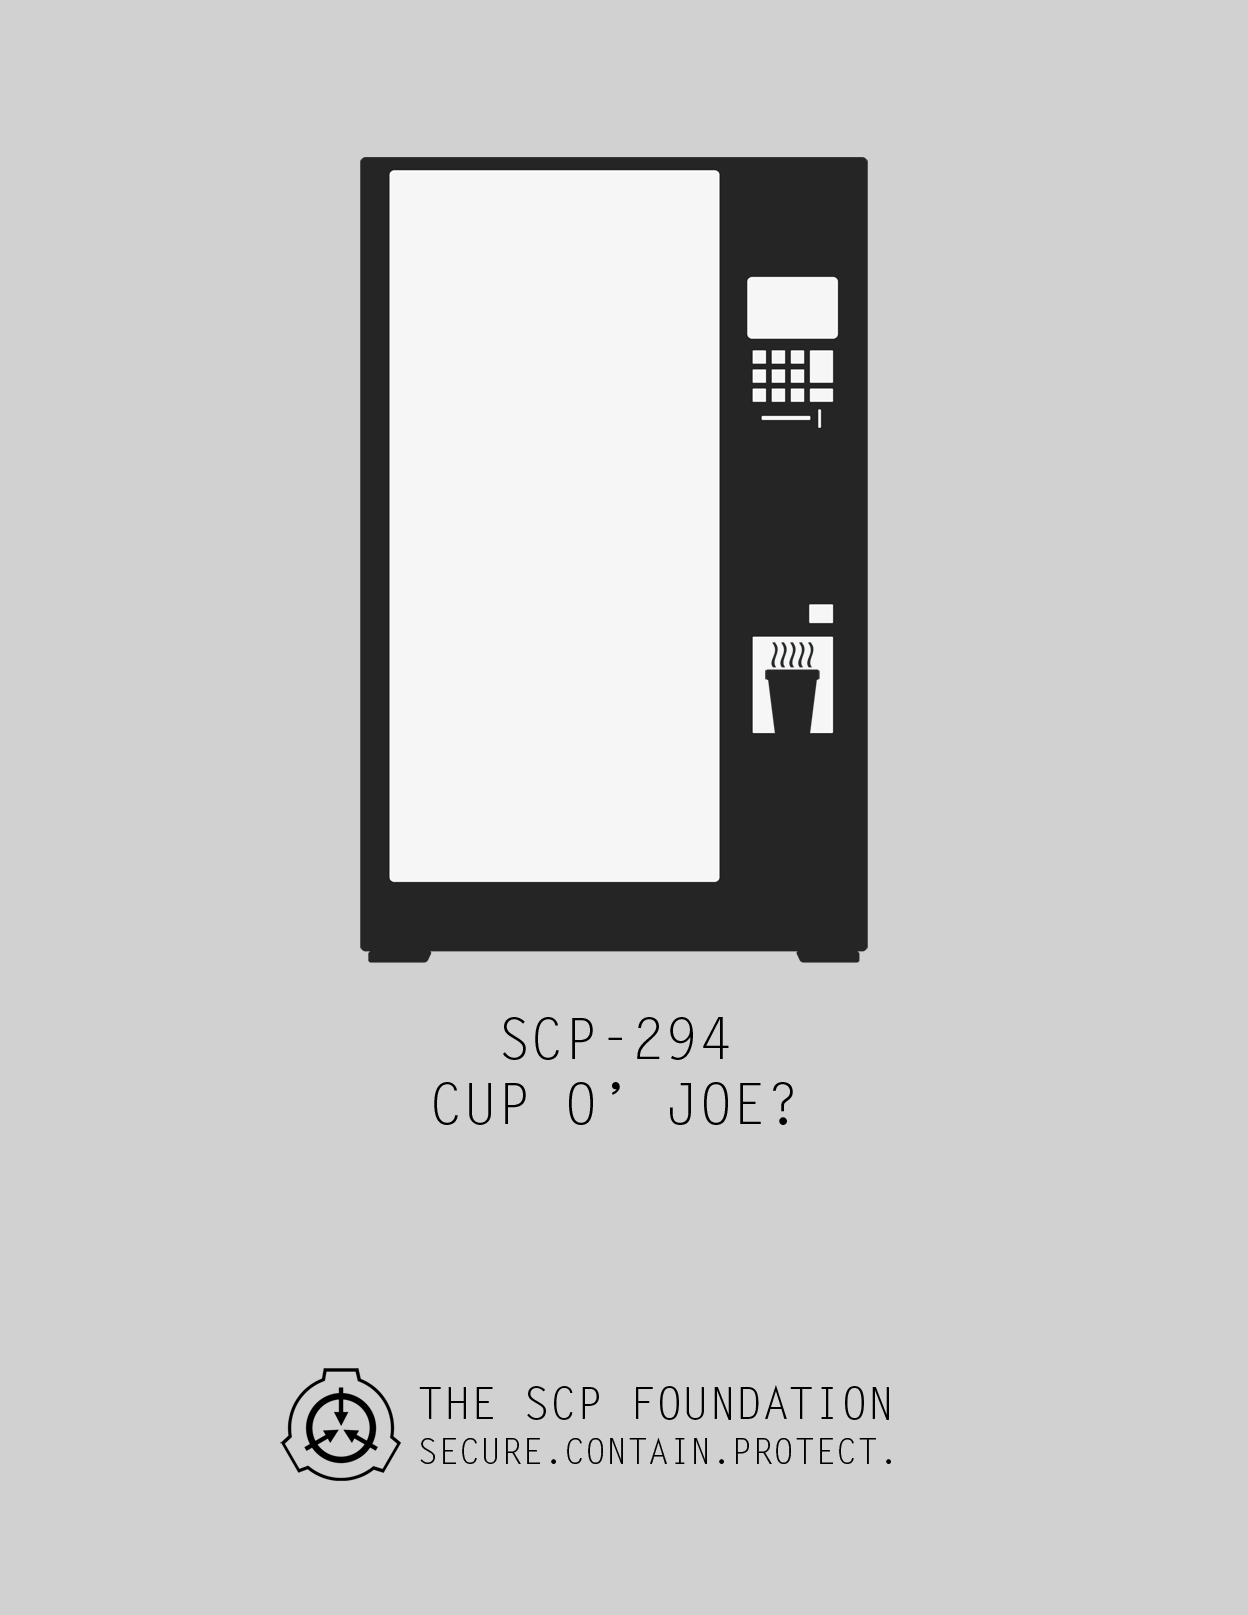 Scp 294 Cup Scp 1248x1615 Wallpaper Teahub Io